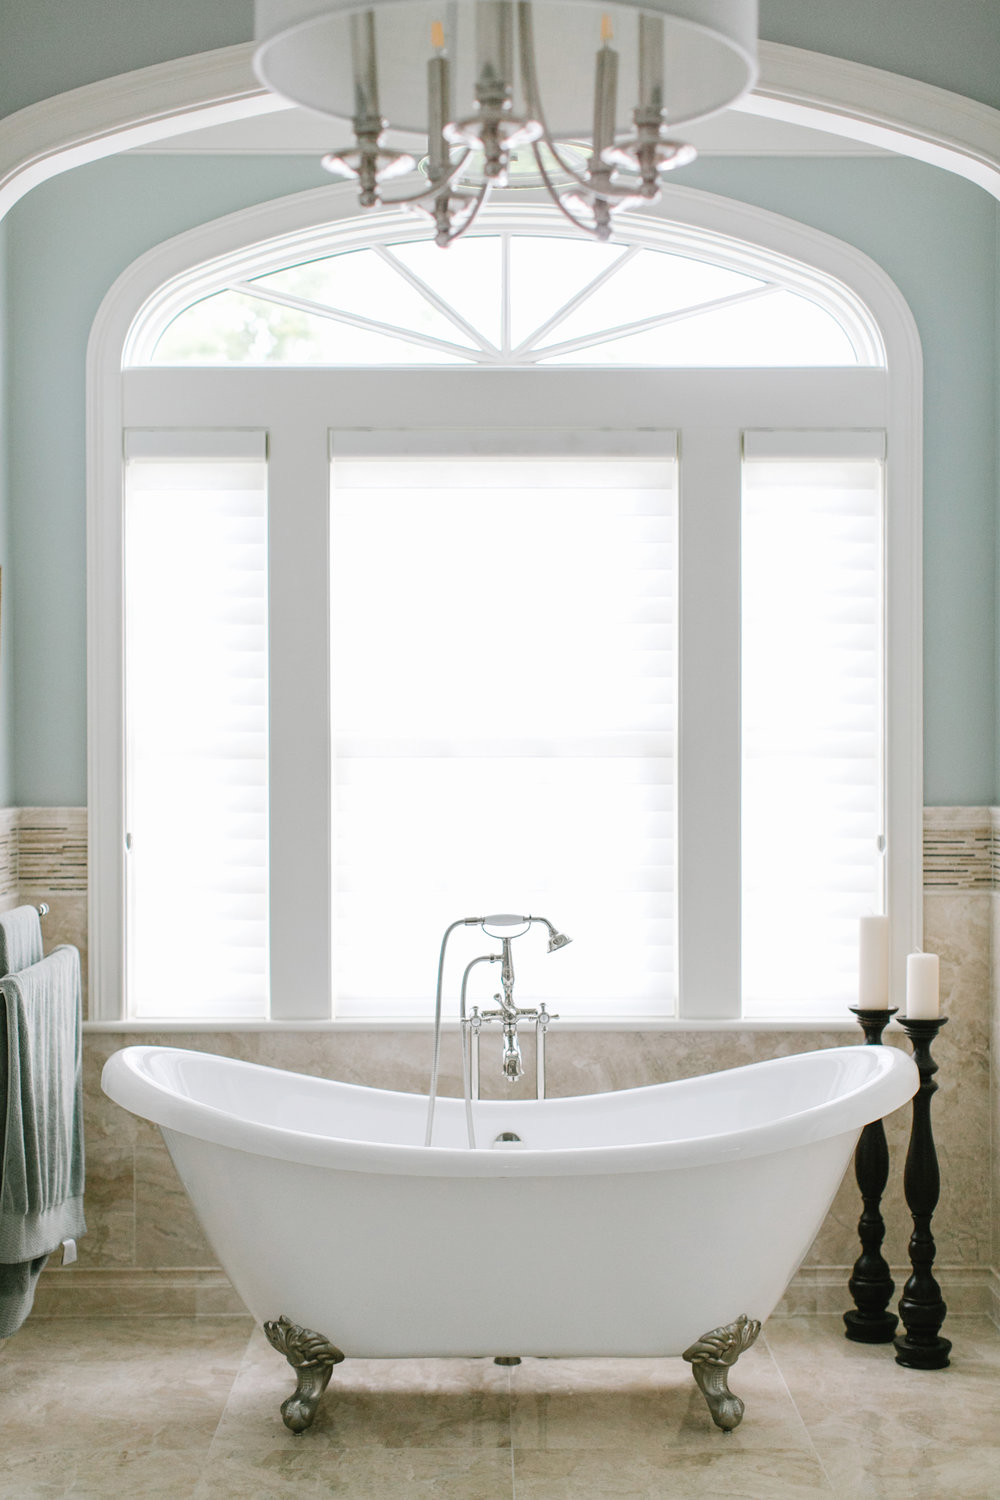 Custom window treatments in bathroom remodel